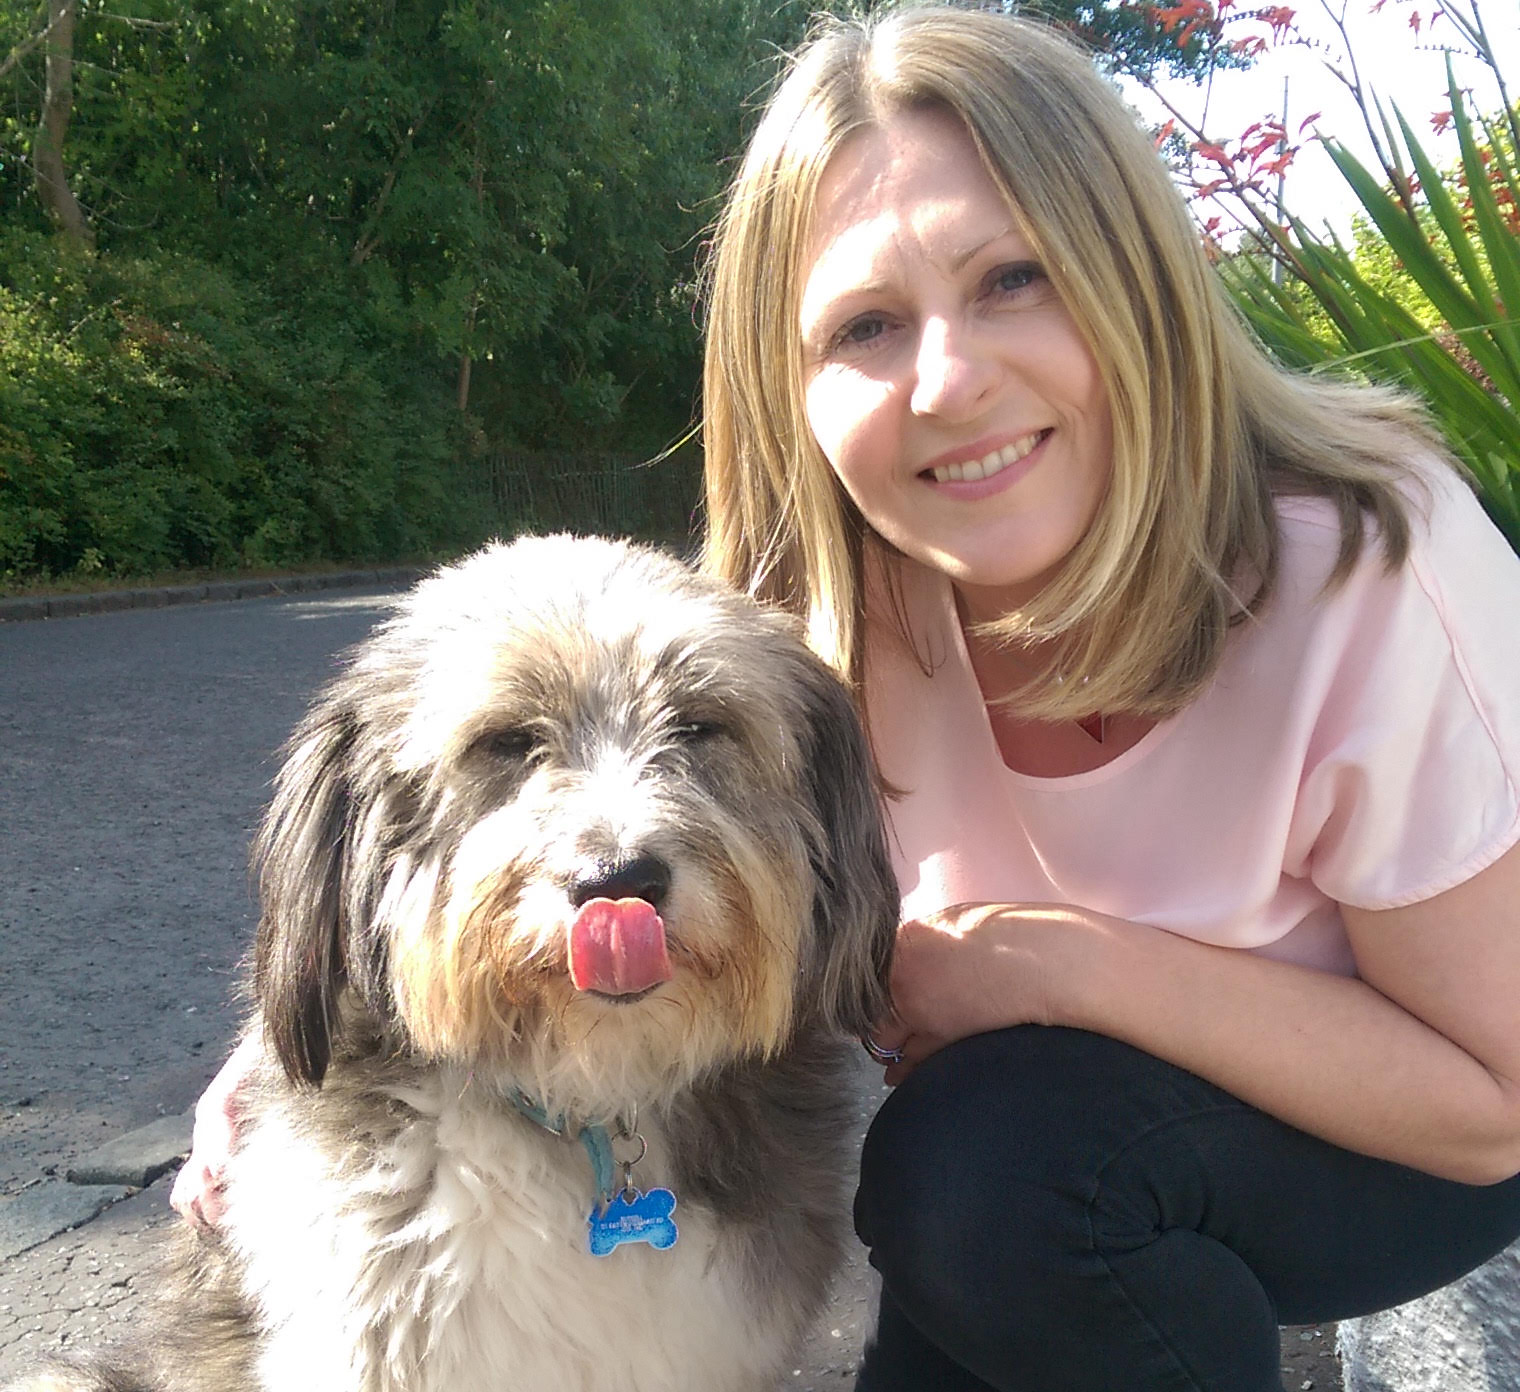 East Renfrewshire woman hailed for charity which enables elderly people to adopt animal companions